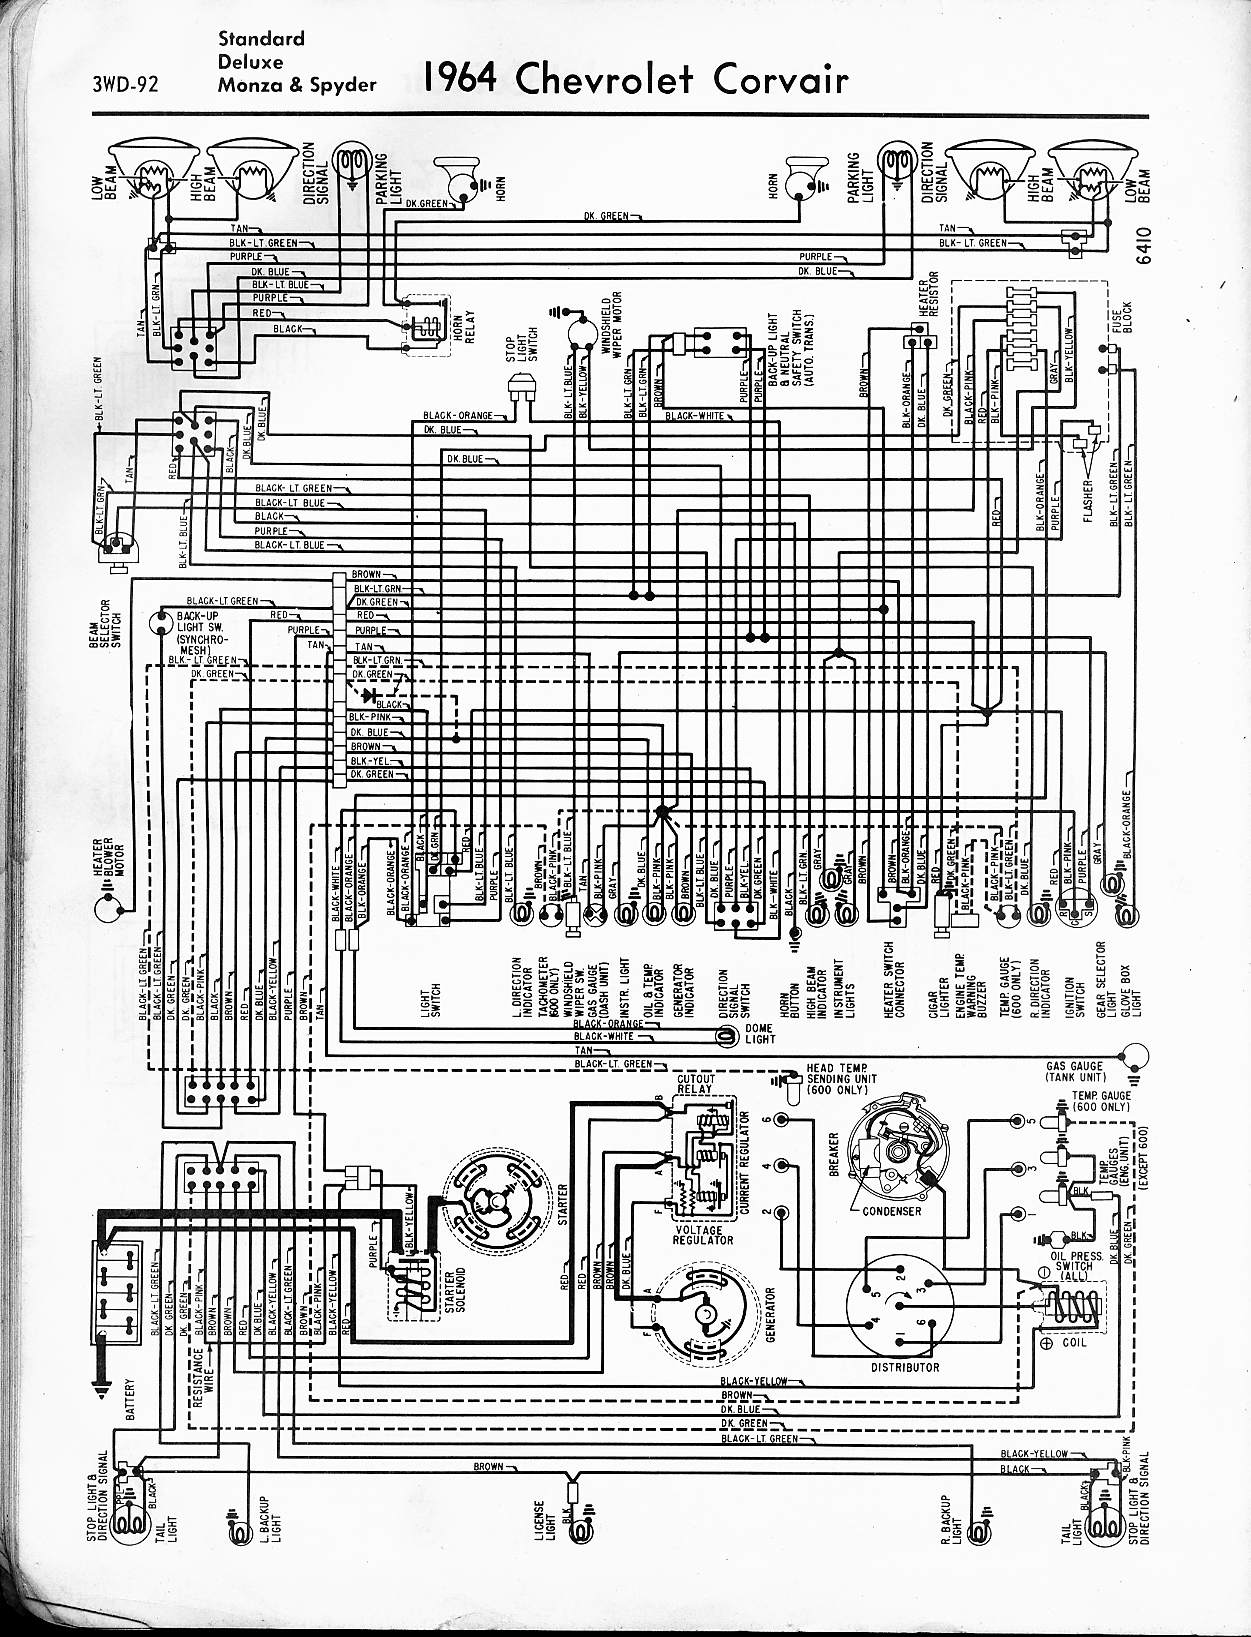 MWireChev64_3WD 092 57 65 chevy wiring diagrams 1963 corvair wiring diagram at gsmx.co